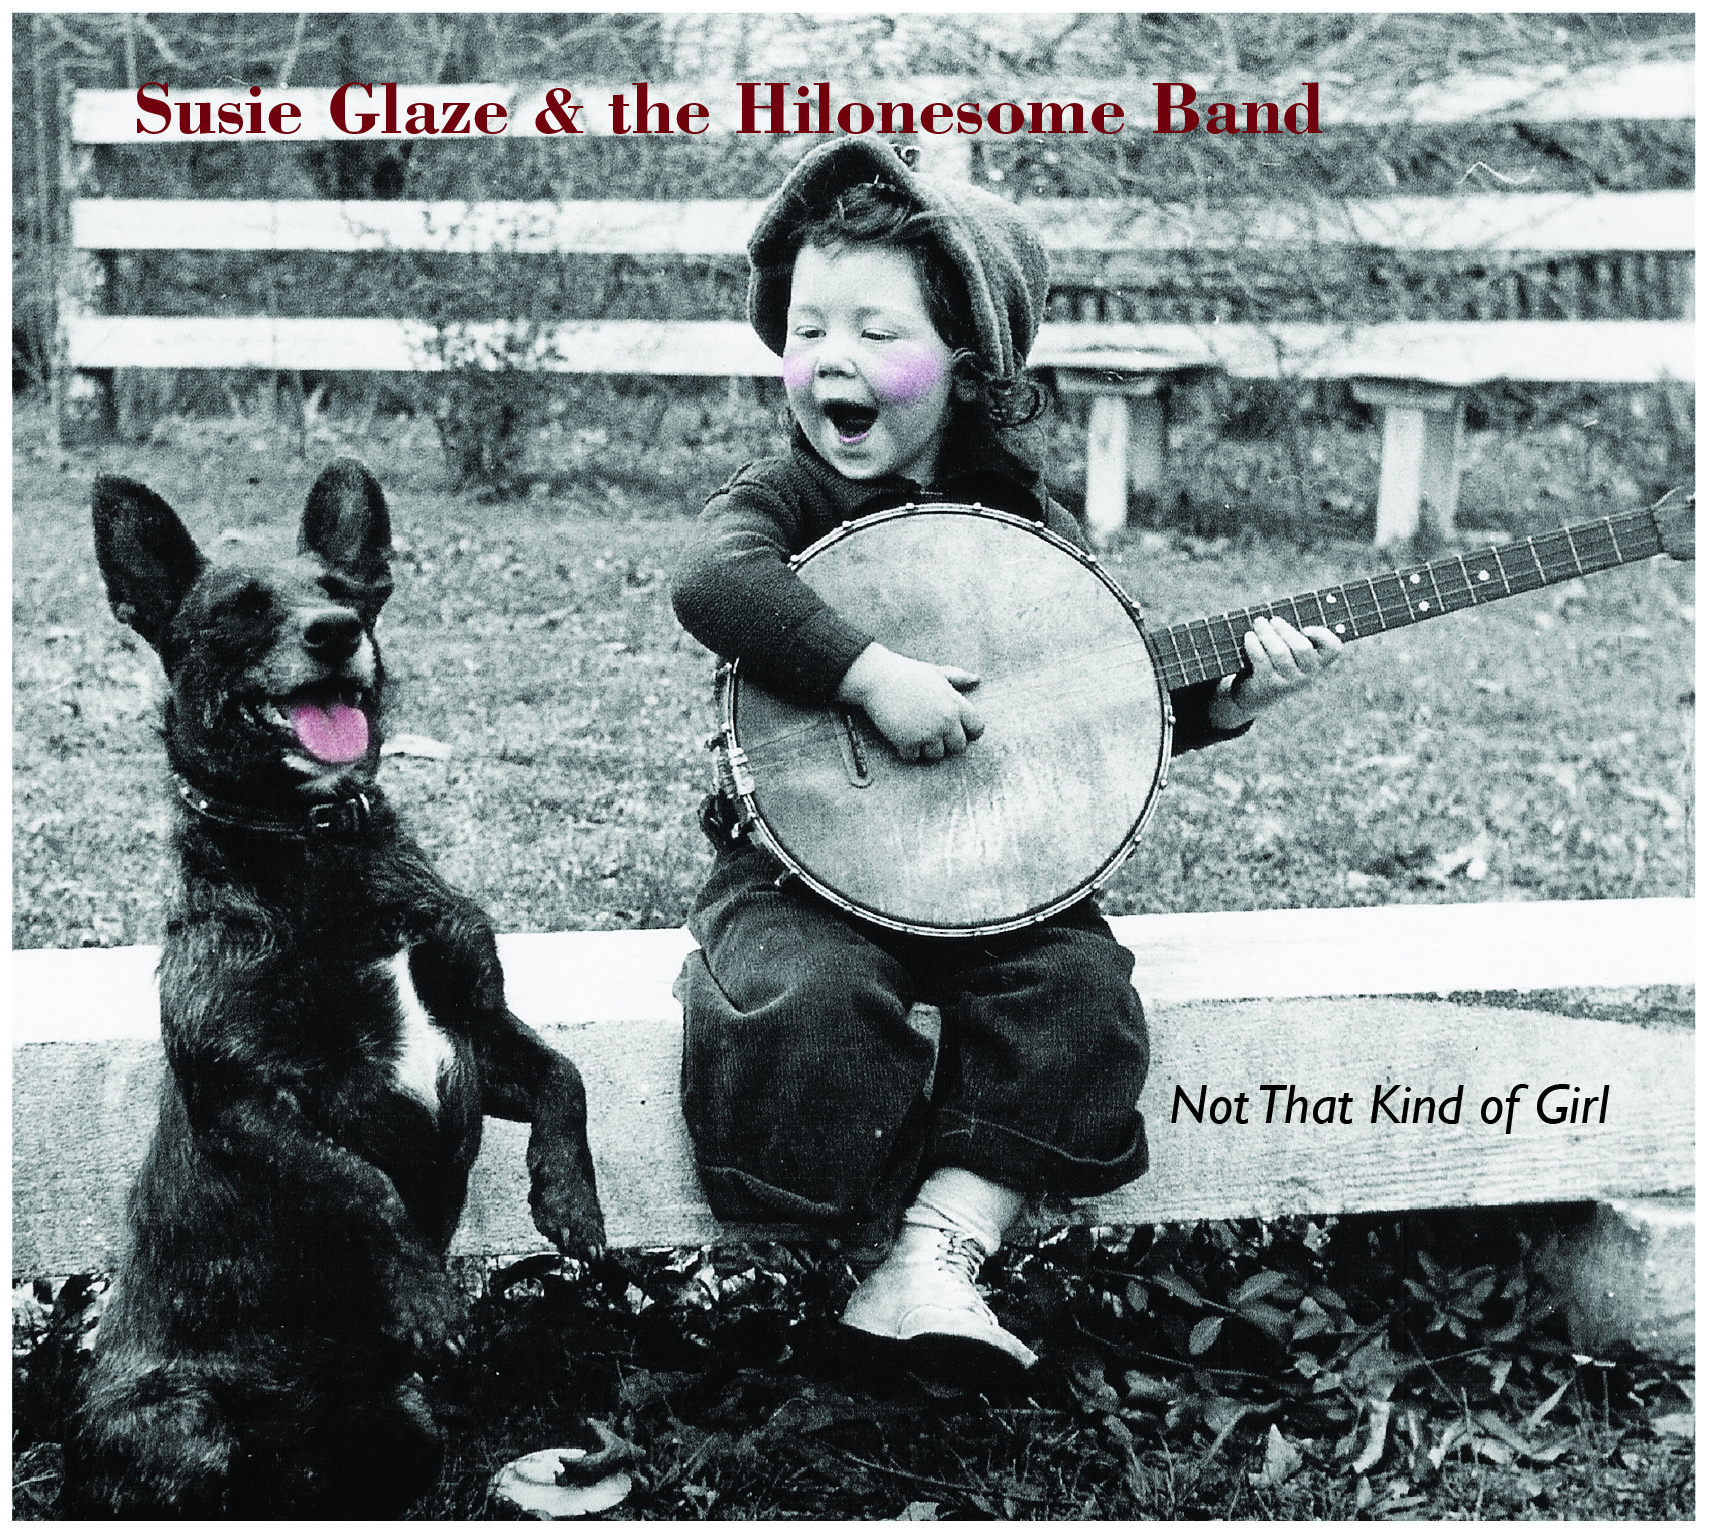 Susie Glaze and the Hilonesome Band: Not That Kind of Girl